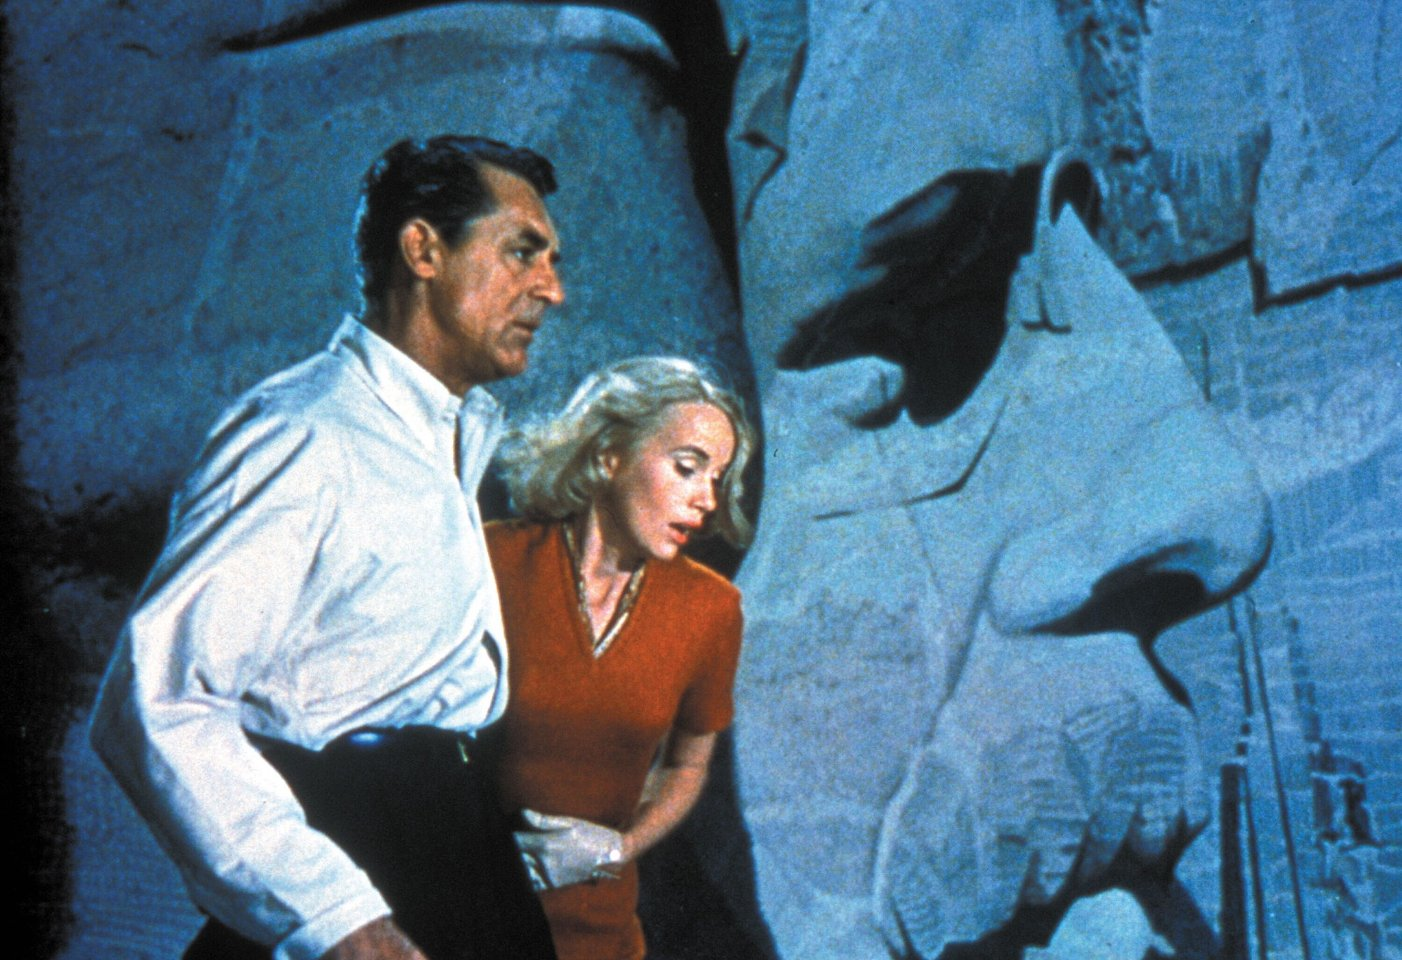 north by northwest suspense essays Free thriller papers, essays thriller and suspense films - movie genres of all sorts have evolved as time has the birds north by northwest psycho.